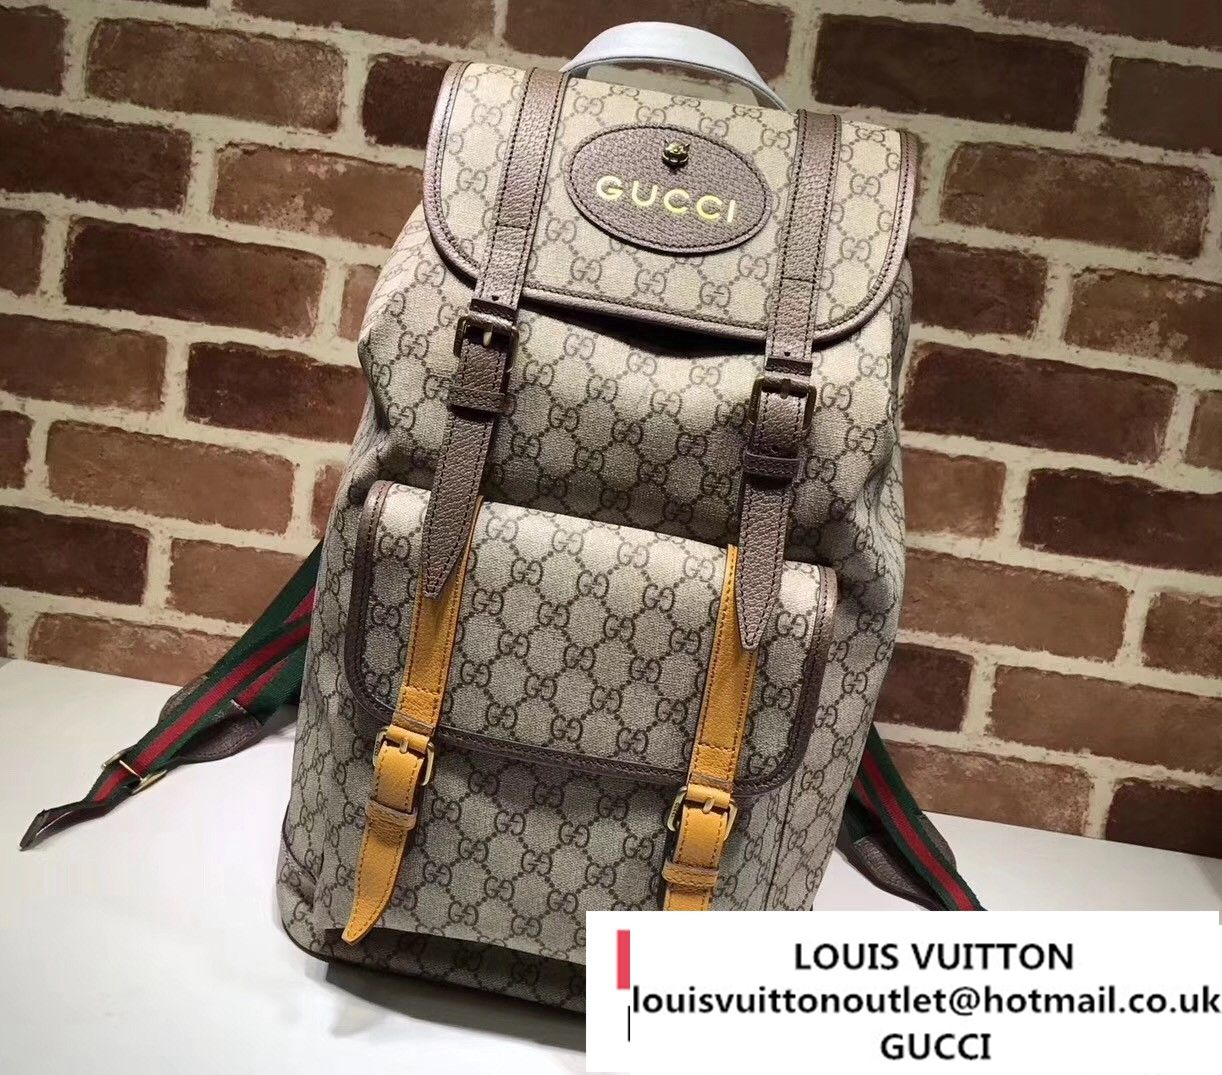 d73a8251ea6d20 Gucci Soft GG Supreme Backpack Bag 473869 2017   Gucci in 2019 ...